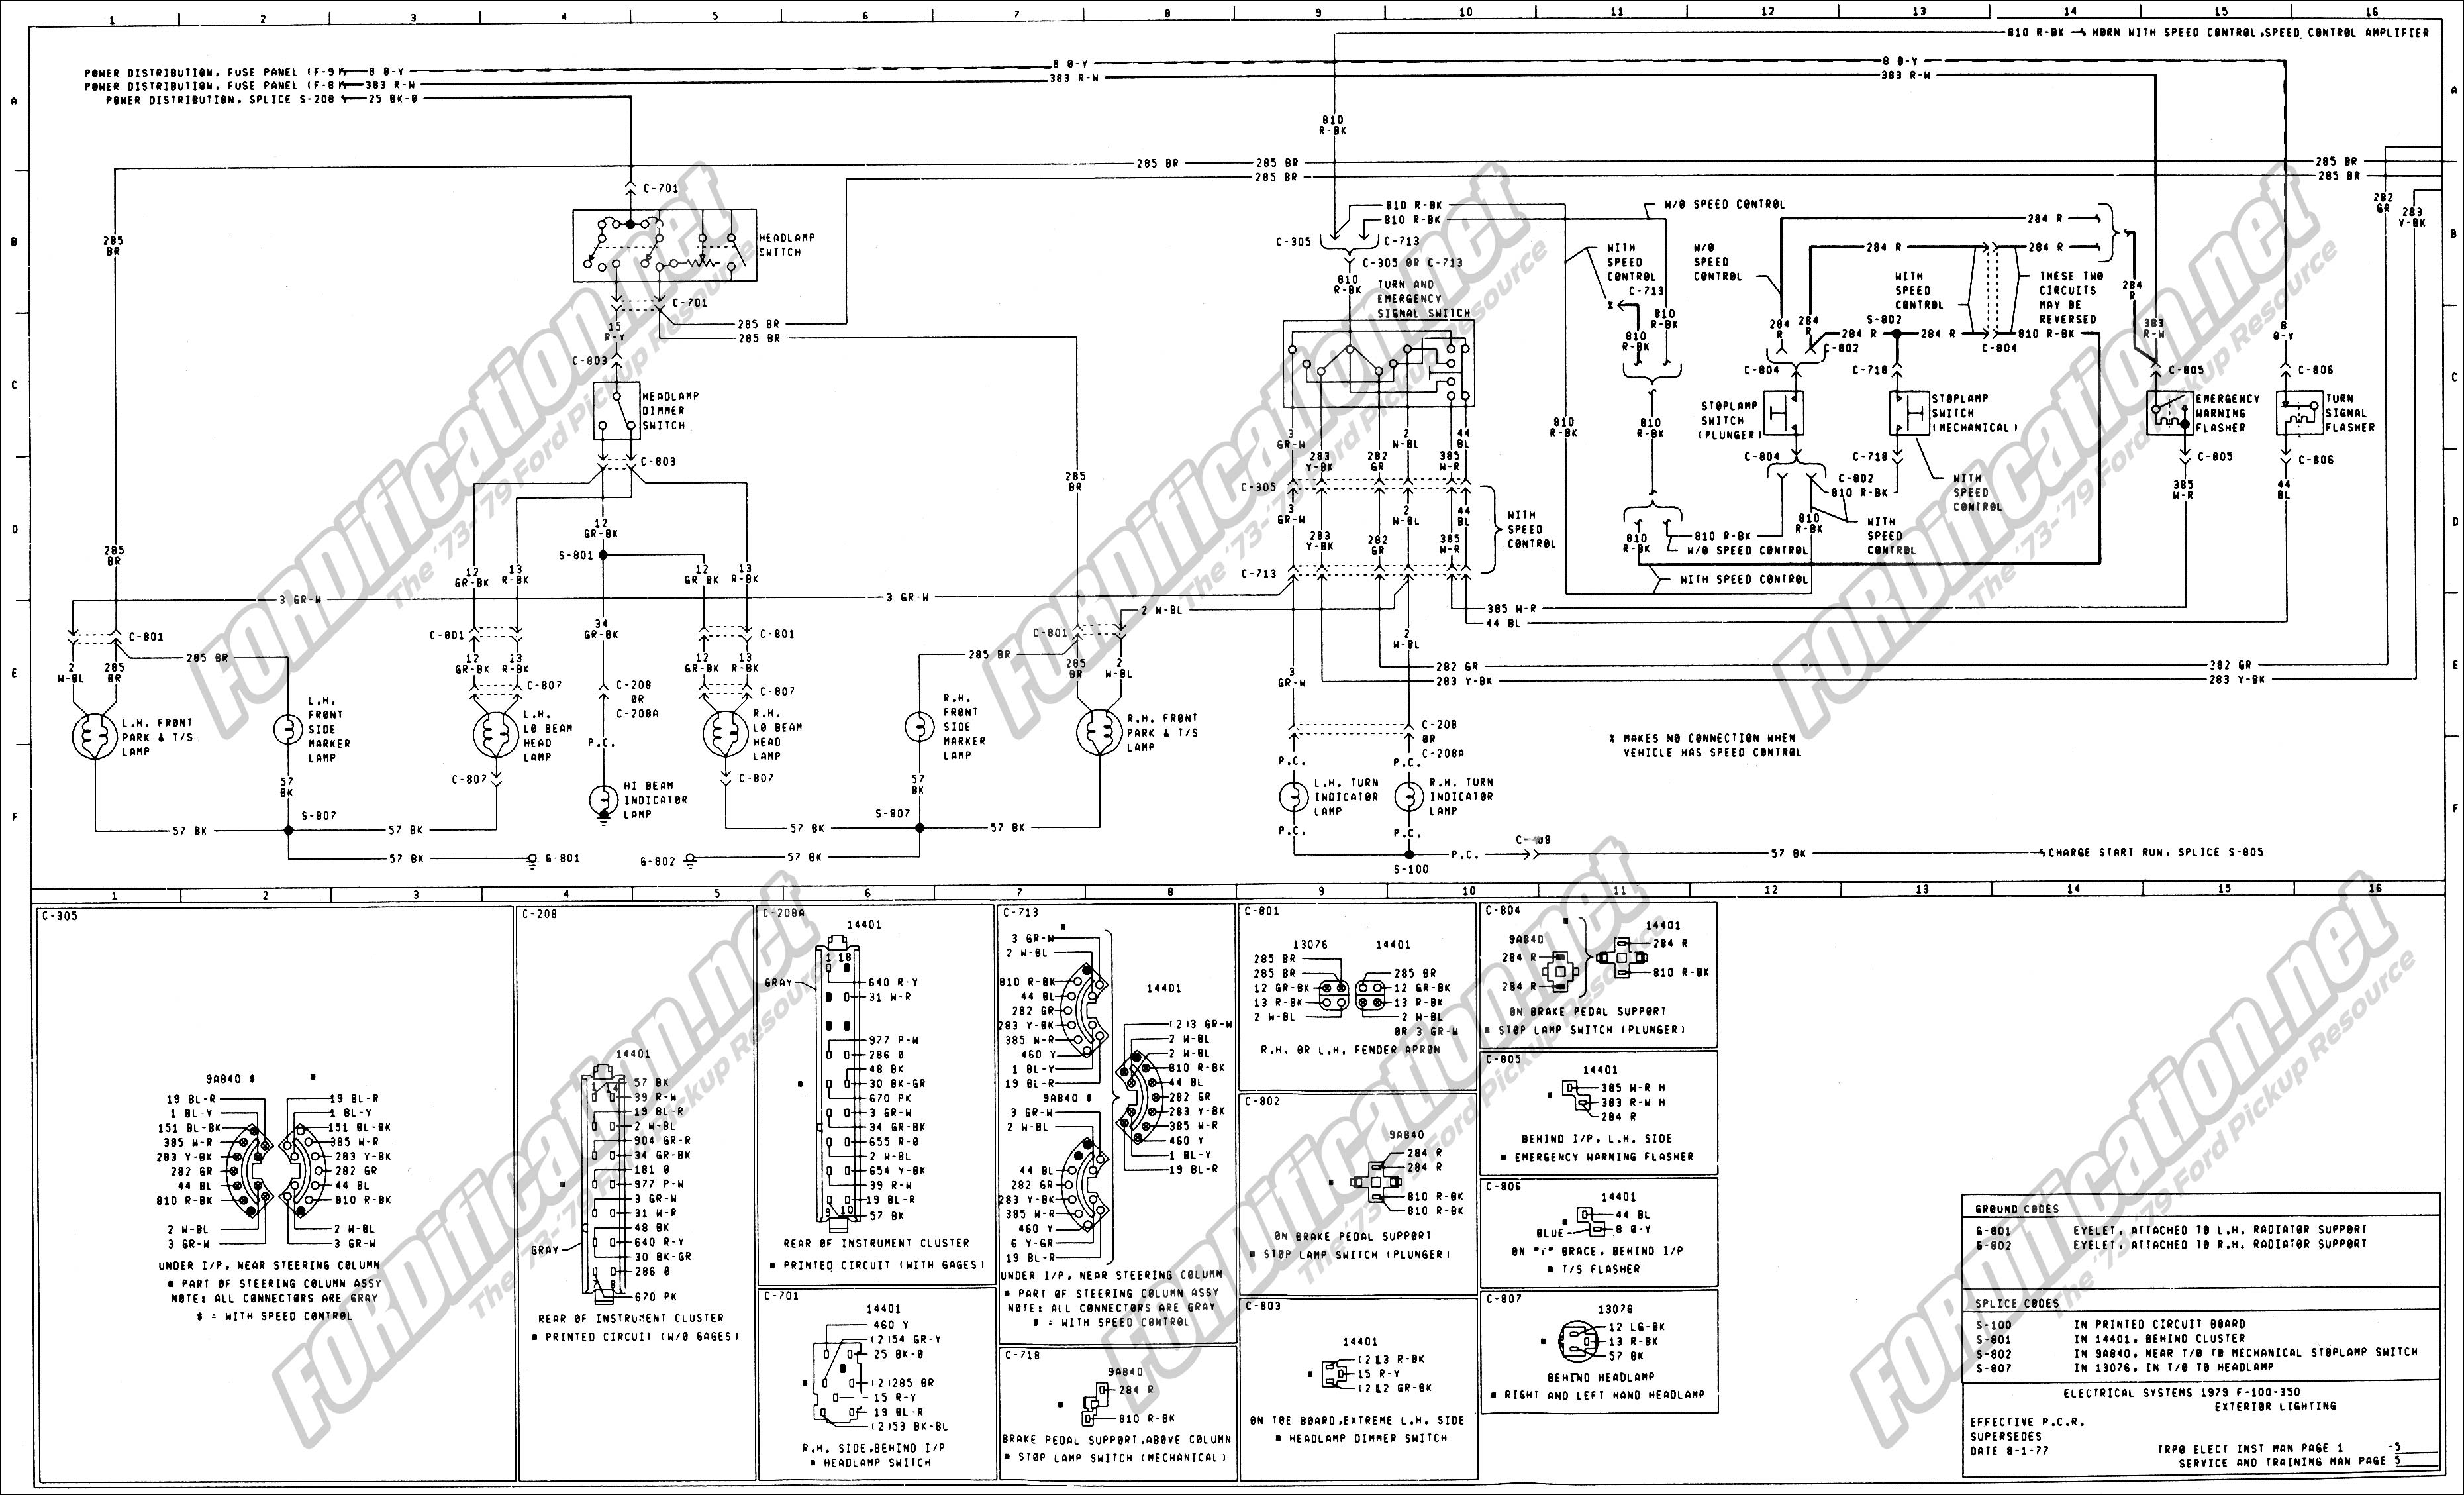 1976 Ford F250 Ignition Wiring Diagram from www.fordification.net